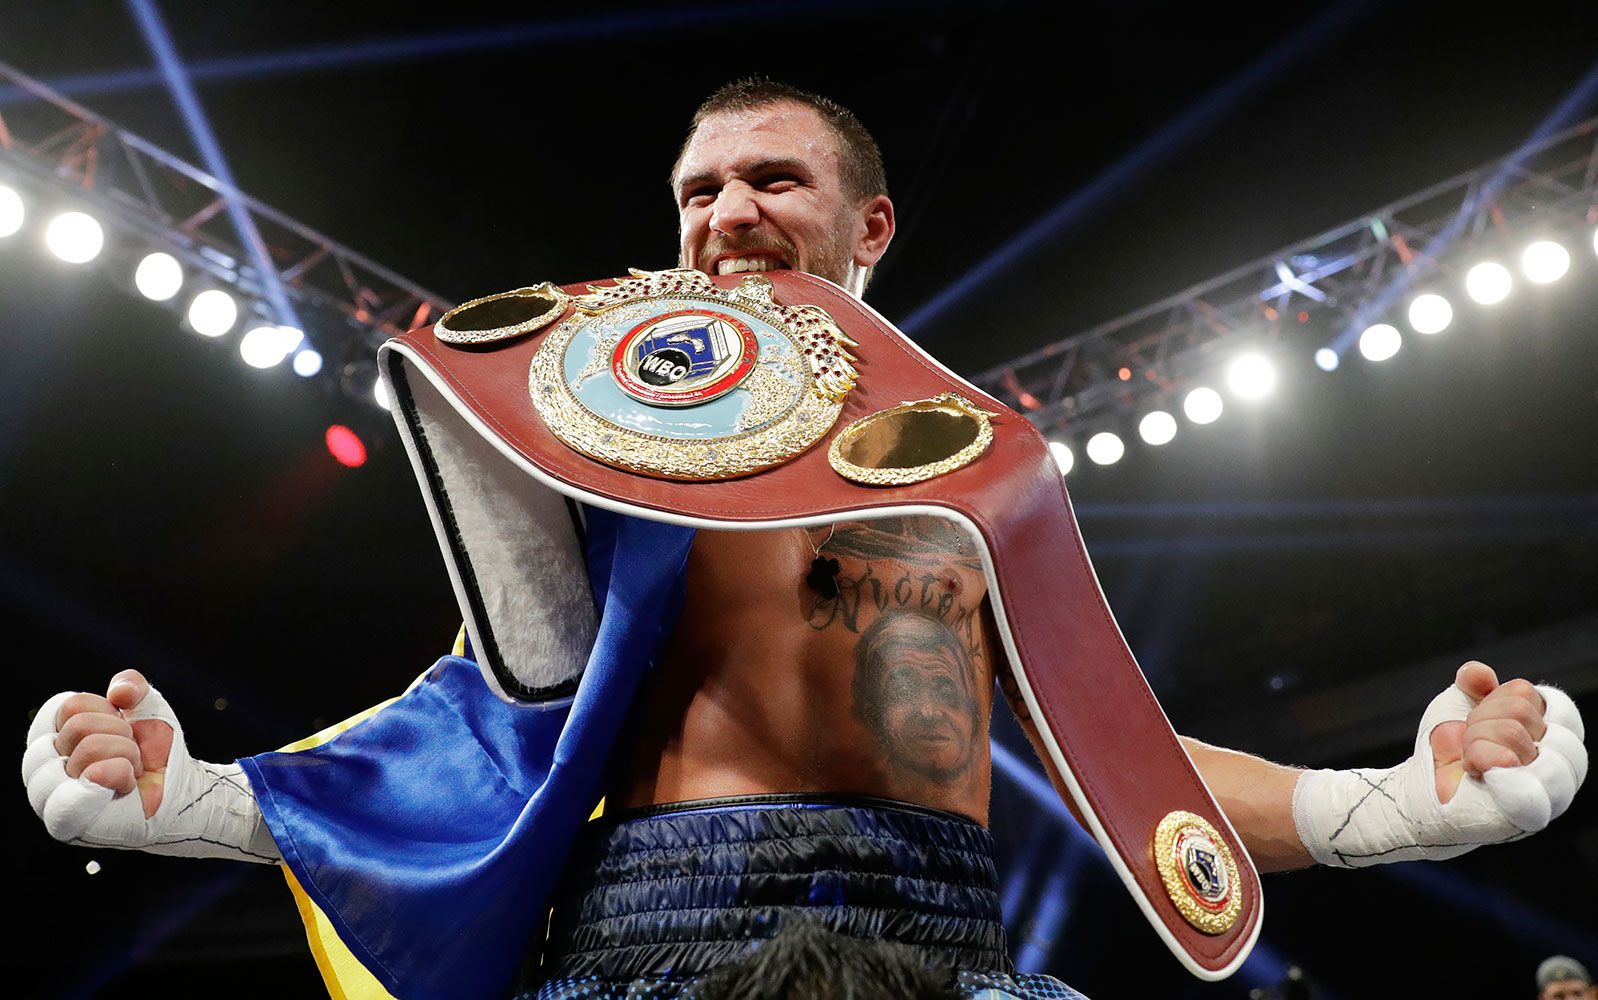 Tonight At 8 00 Pm Et On Espn Vasyl Lomachenko Moves Up In Weight To Challenge For Another World Title Takin Sports Wallpapers Olympic Champion Sports Photos